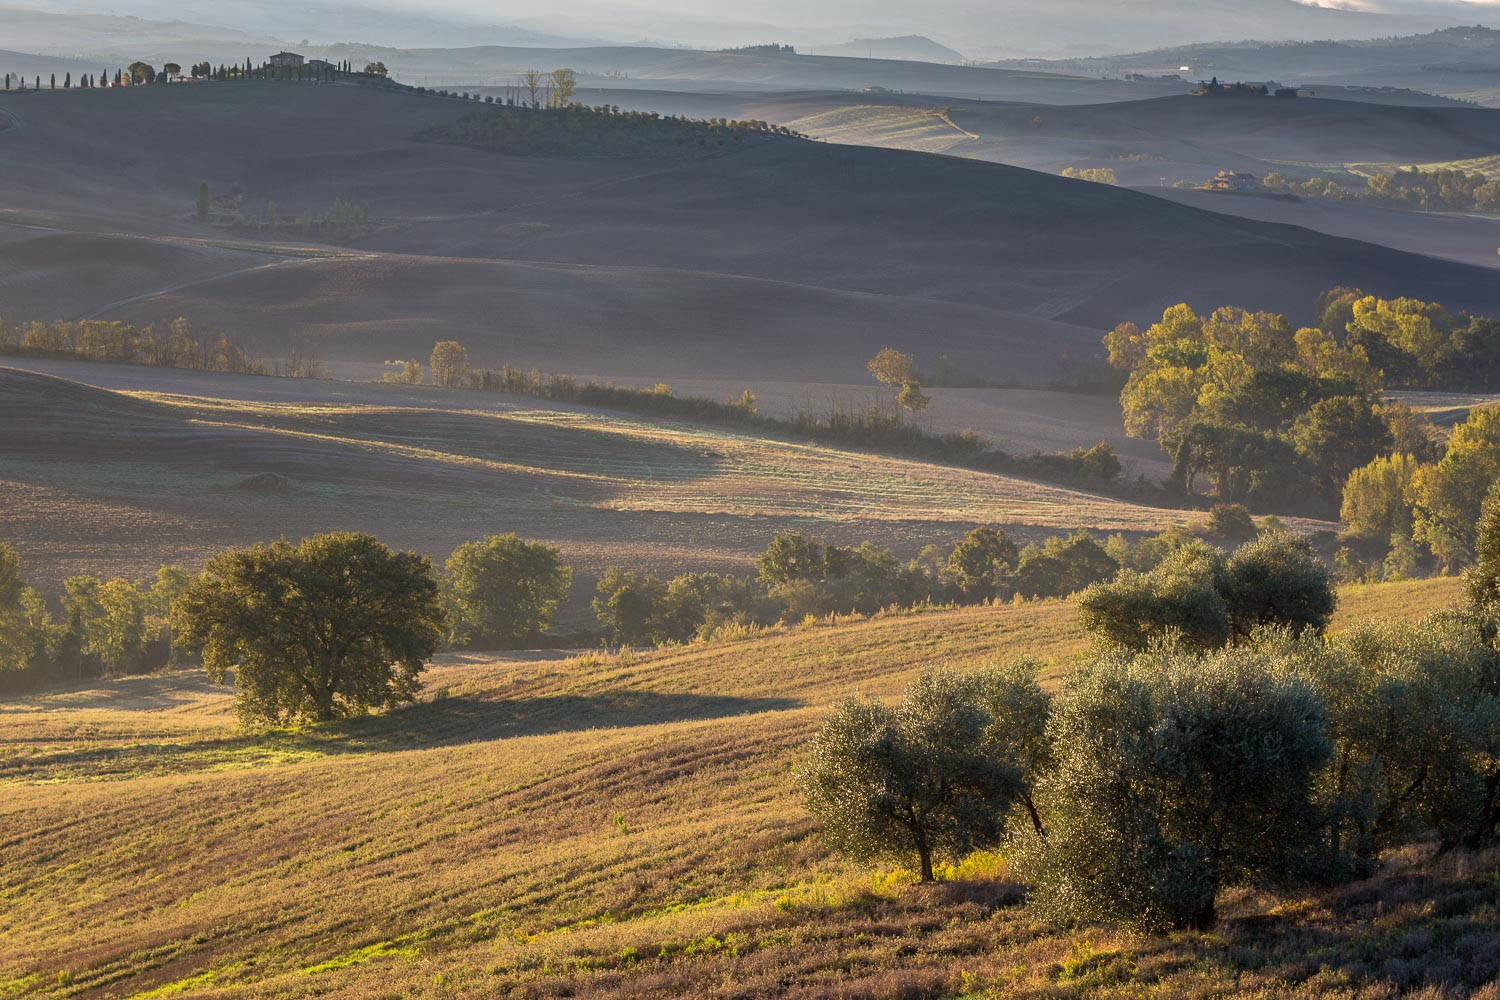 Val d'Orcia dawn